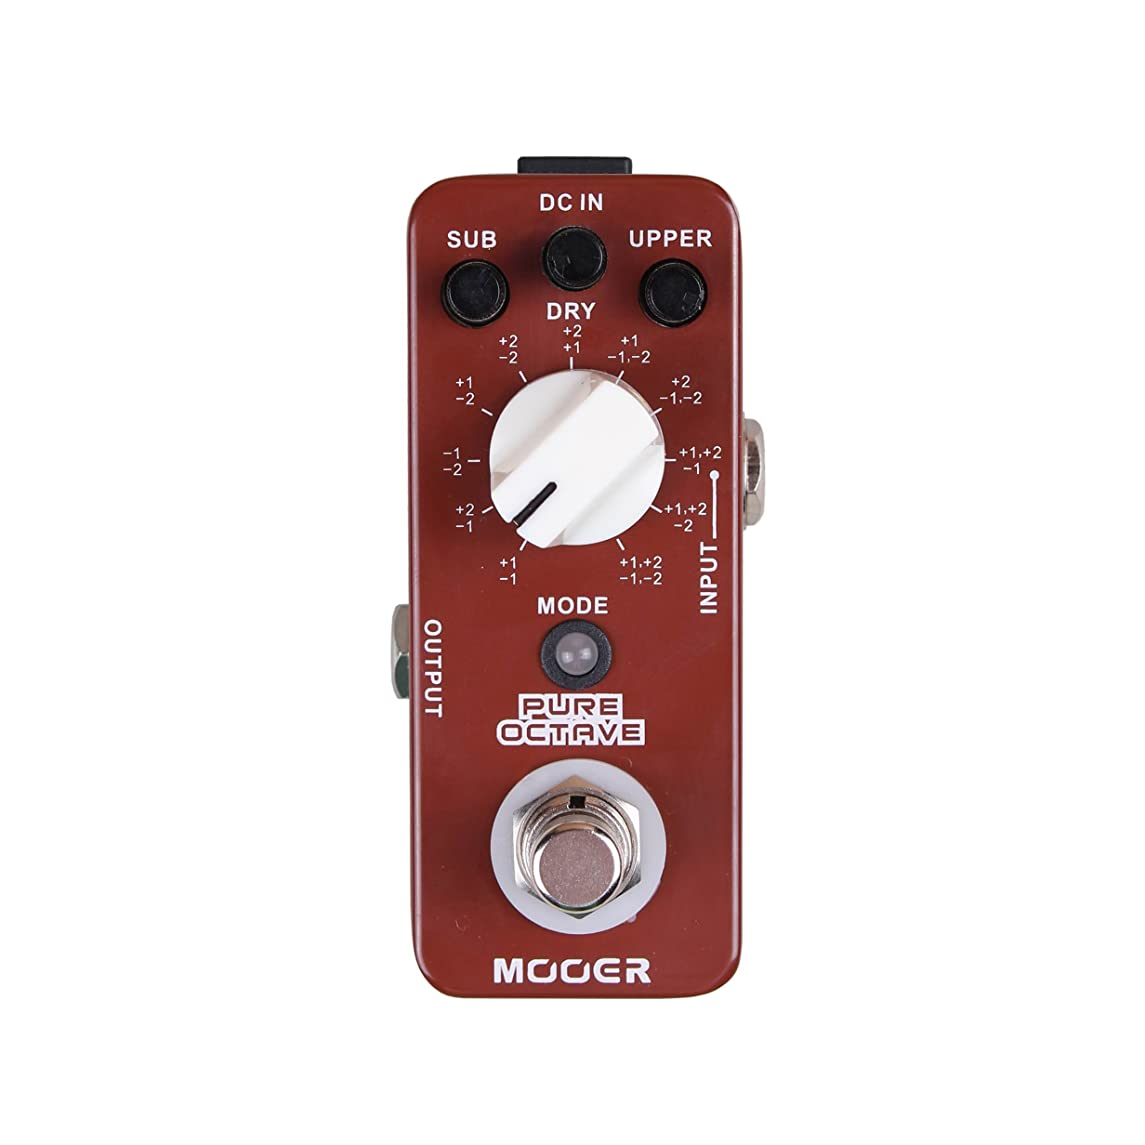 Mooer EQ Effects Pedal, 2.25 x 4.25 x 1.75